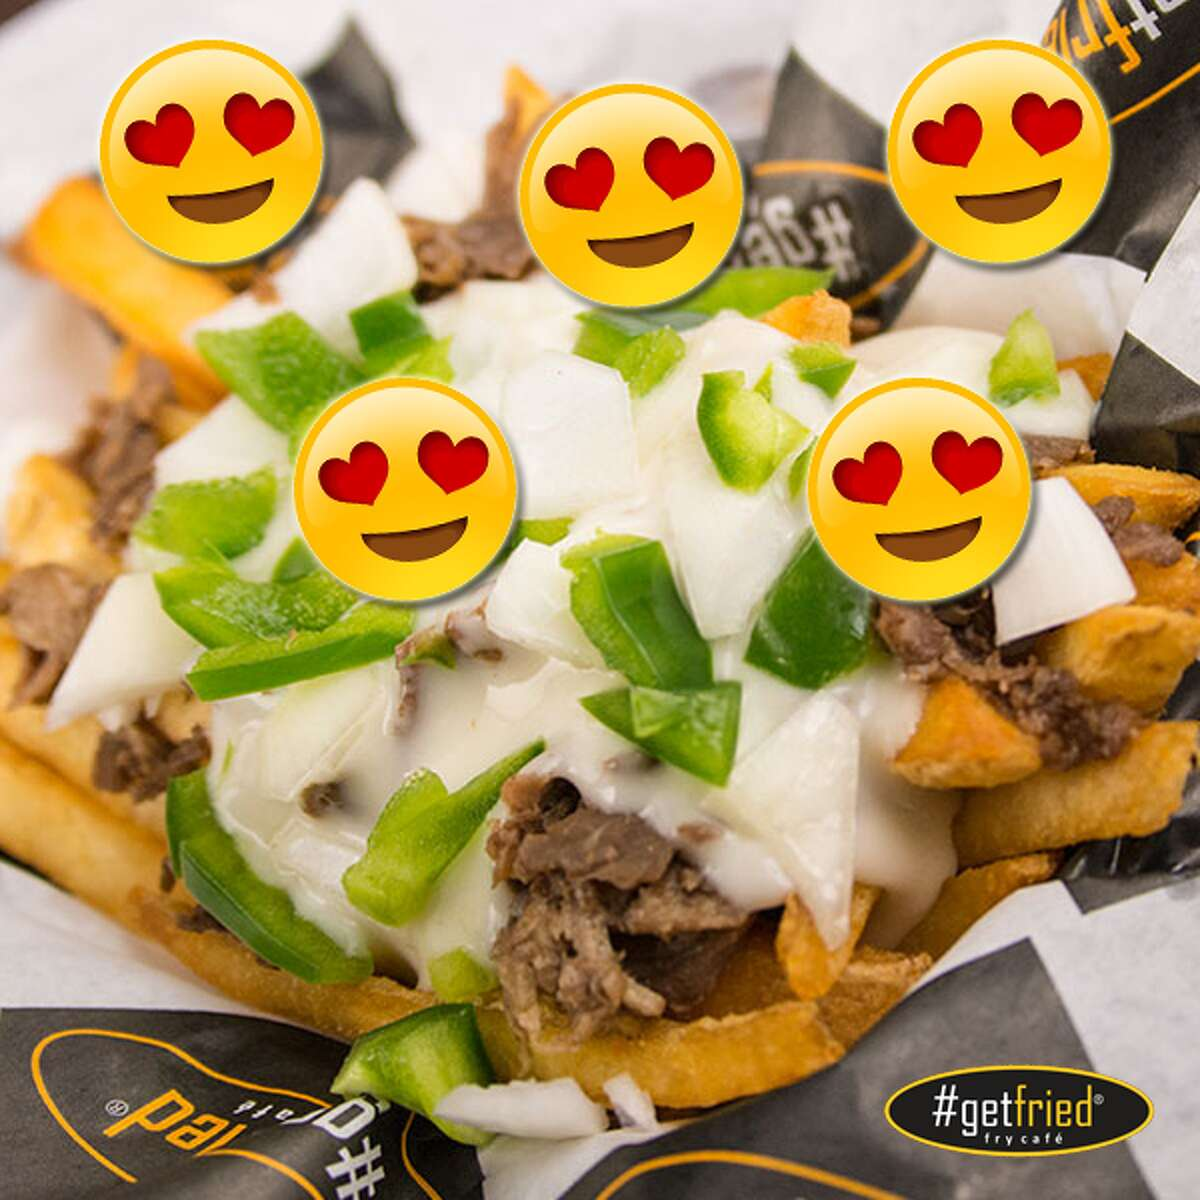 The Buffalo-based gourmet french fry shop #GetFried is coming to San Antonio as early as this summer.